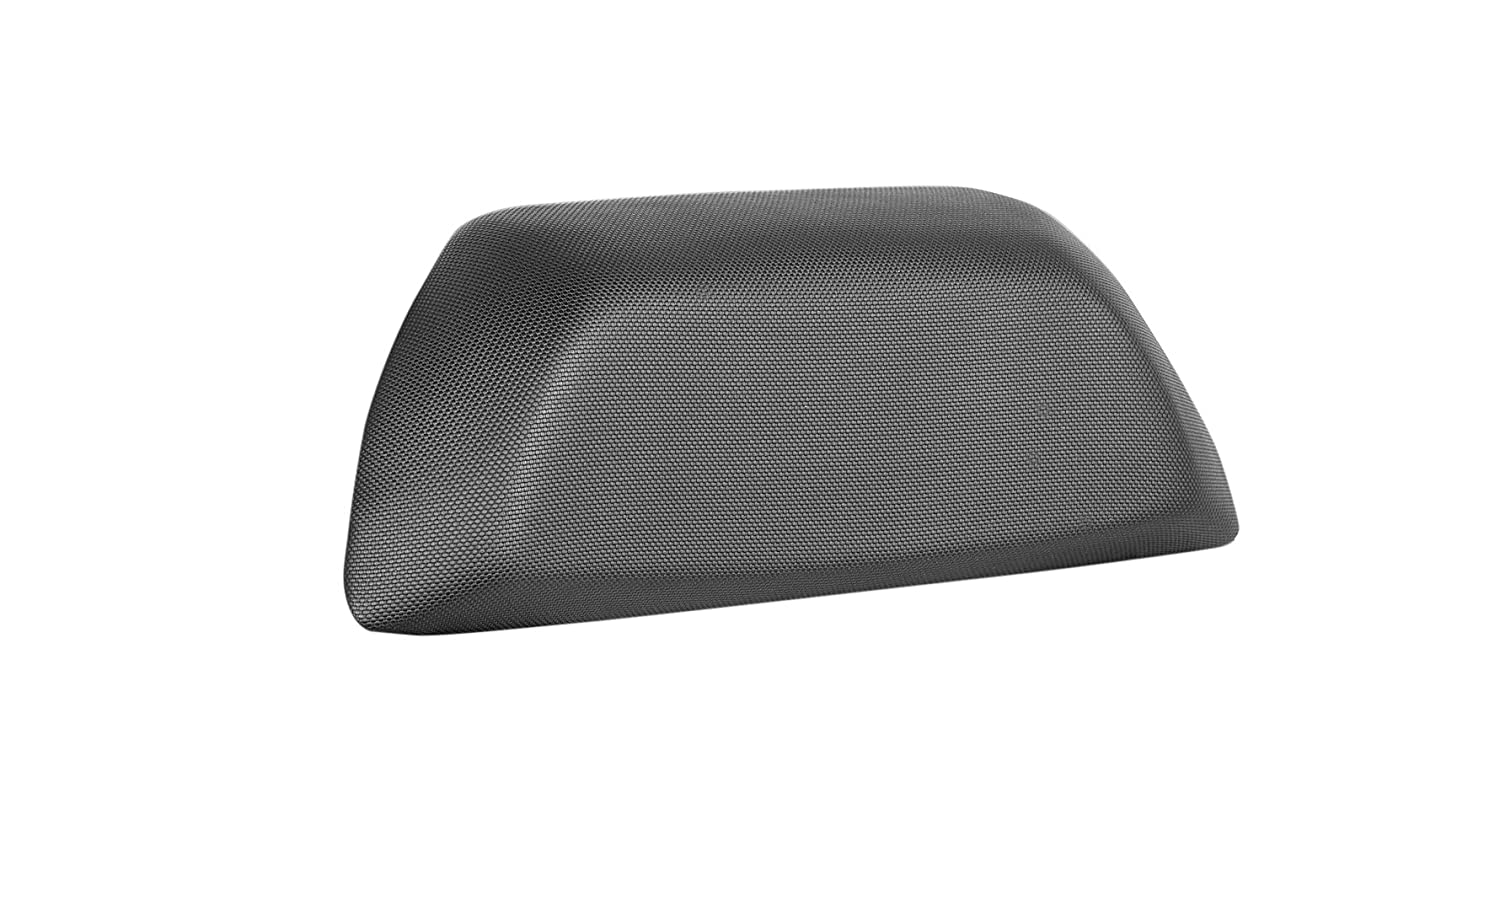 SHAD D0RI3900 Top Case Accessory for Backrest, Black NAD S.L